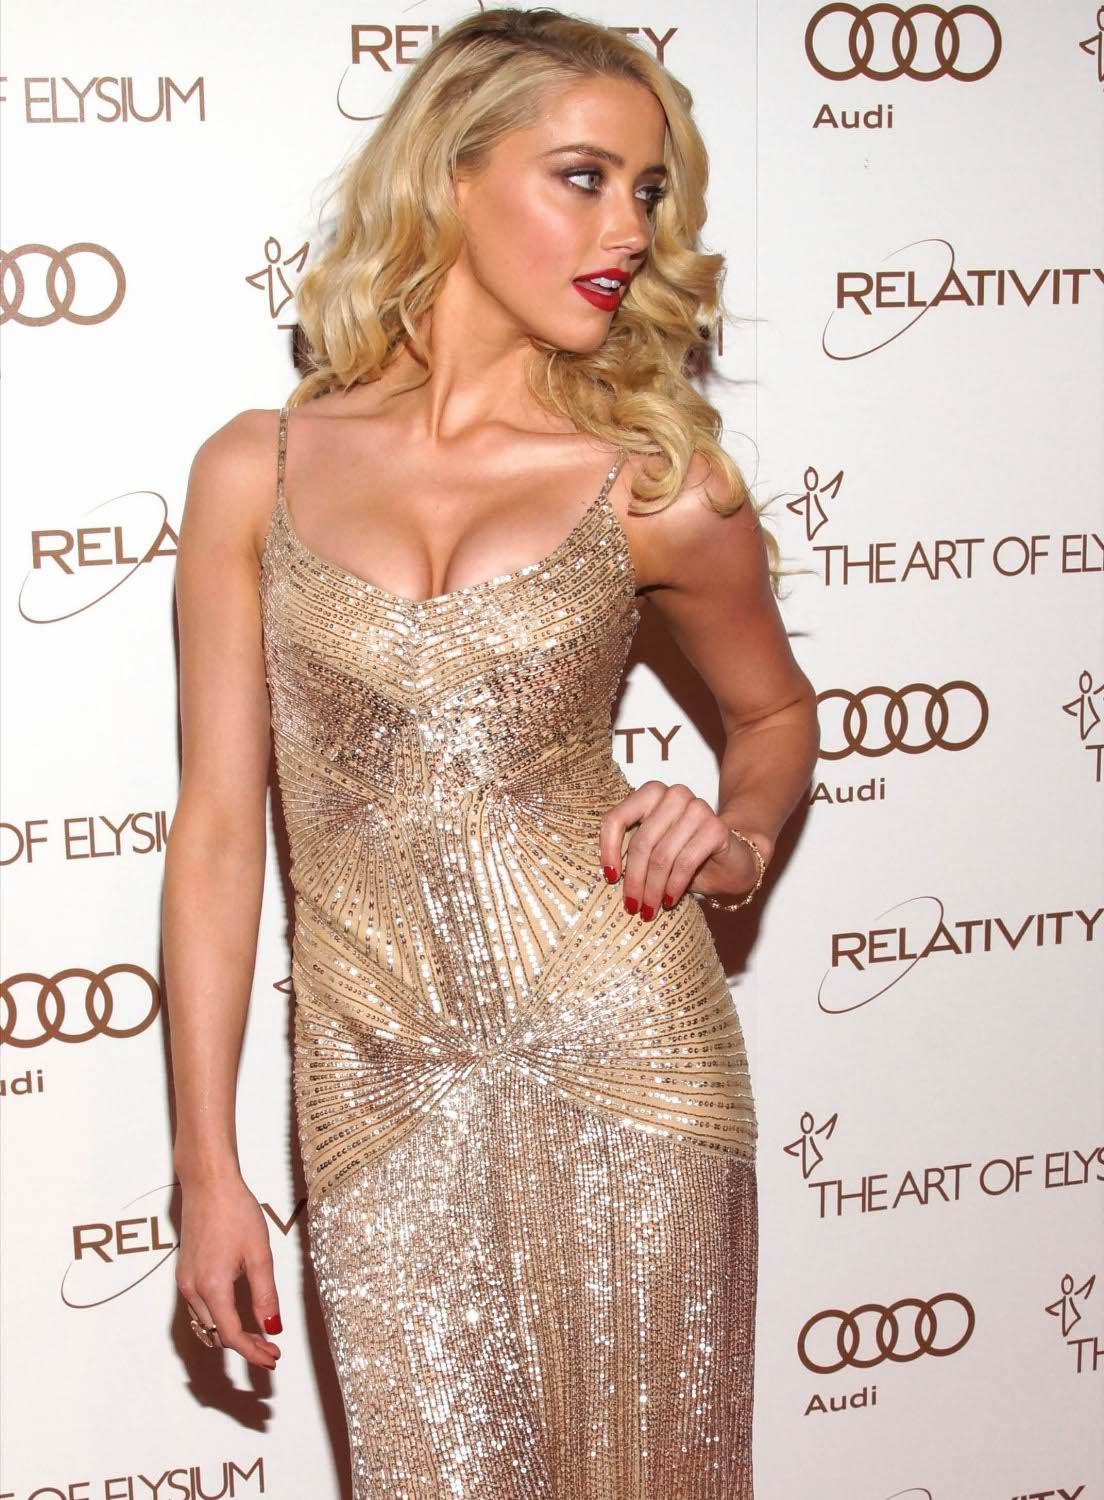 61 Sexy Amber Heard Boobs Pictures Will Make You Lose Your